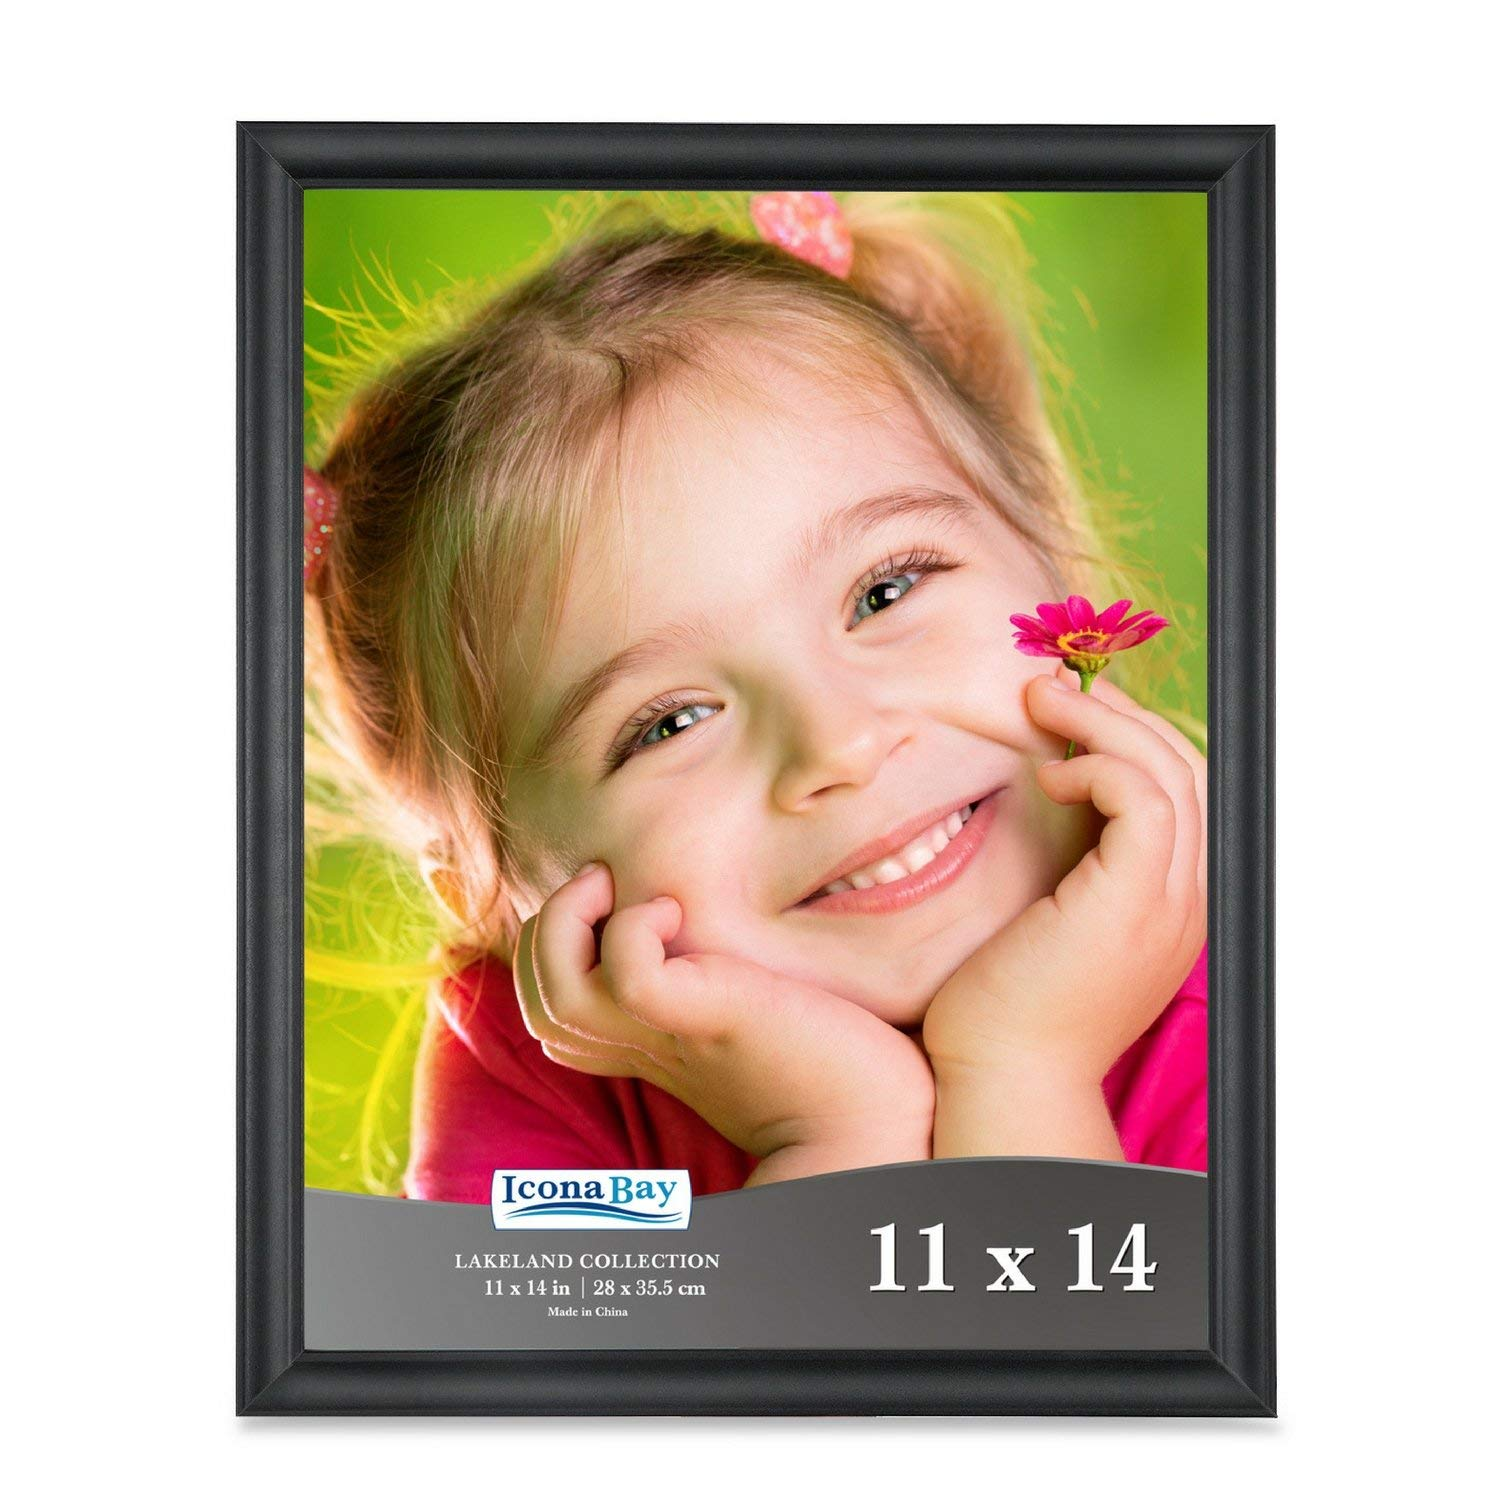 Icona Bay 11x14 Picture Frame (1 Pack), Black Frame, Wood Frame, Photo Frames for Wall or Table, Photo Frame 11x14, Black Picture Frames 11 x 14, Black Photo Frames 11x14, Lakeland Collection